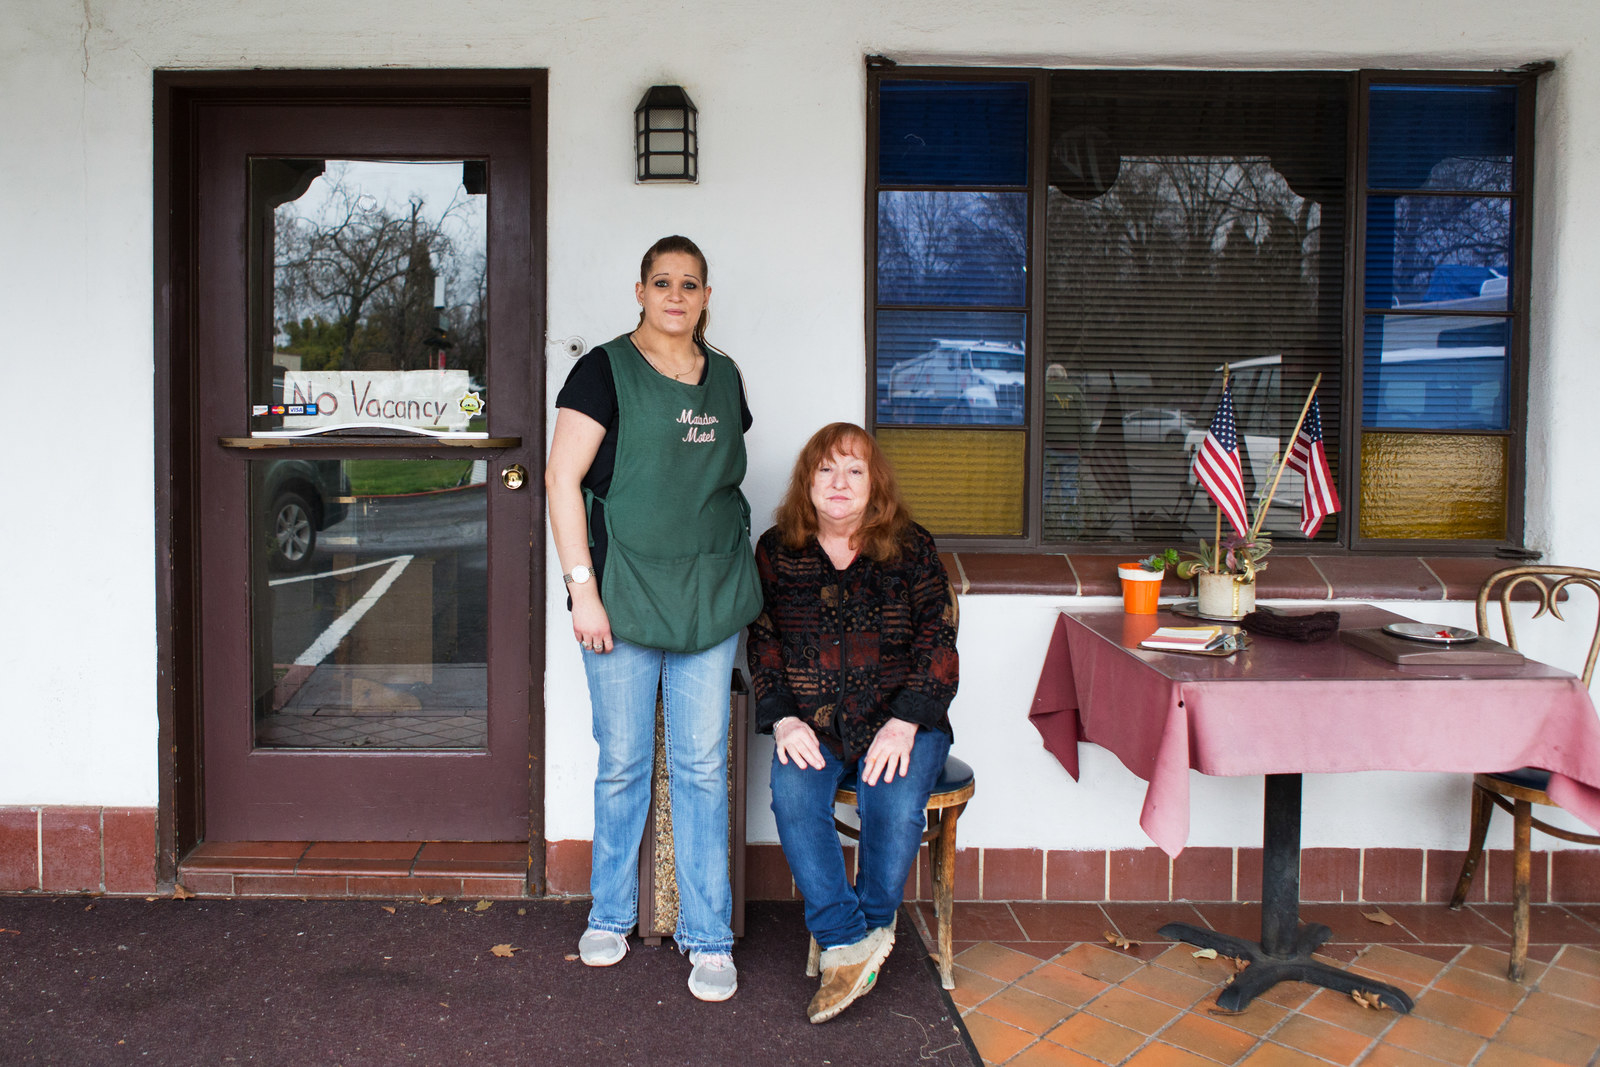 Irene White, owner of the Matador Motel, and Krista Clatterbuck, an employee of the motel, outside the front entrance of the motel in Chico, California.